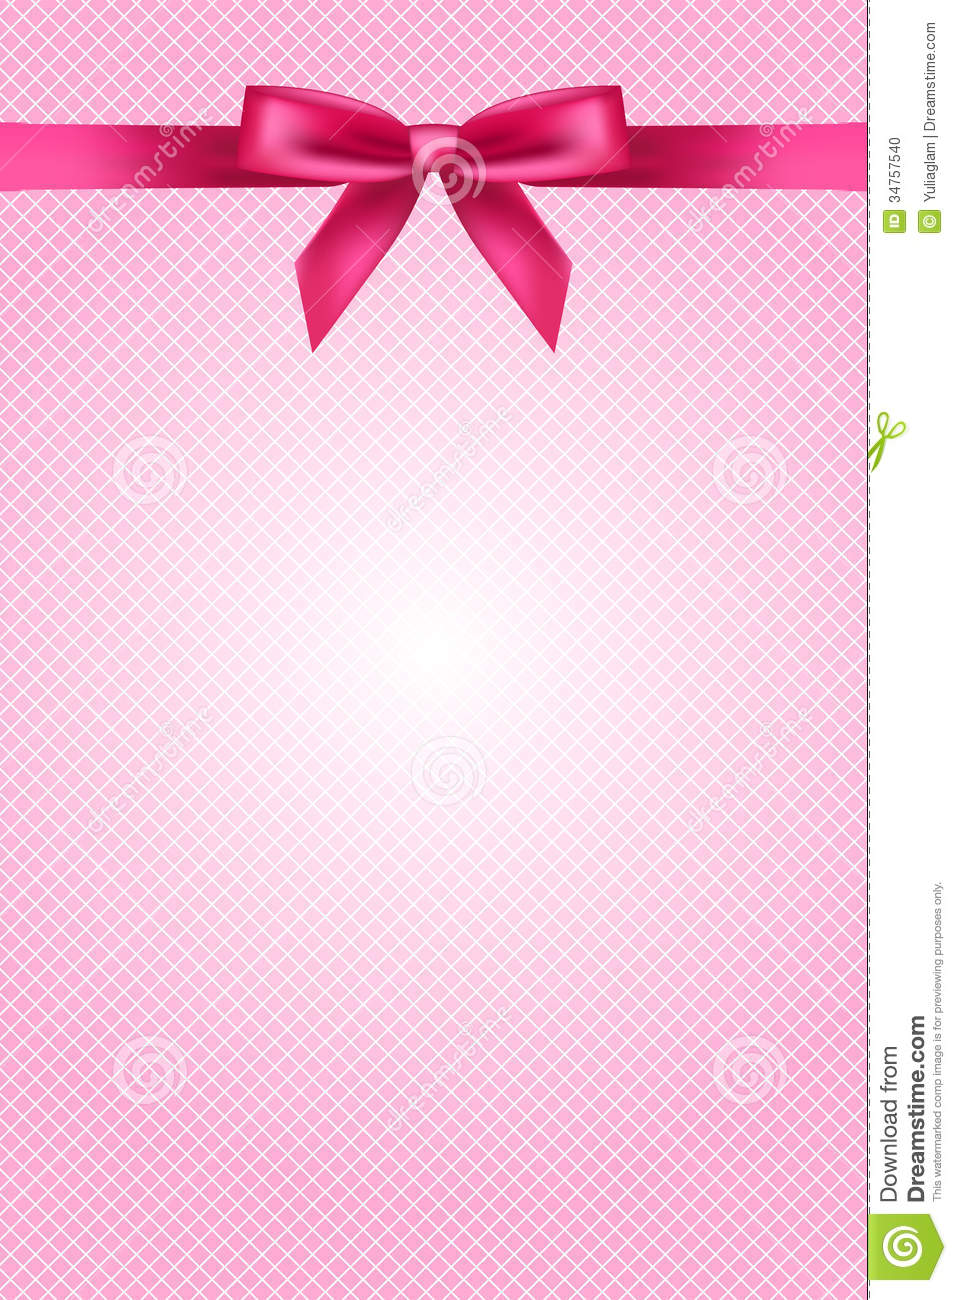 Mouse Wallpaper Cute Pink Wallpaper With Bow And Lace Stock Vector